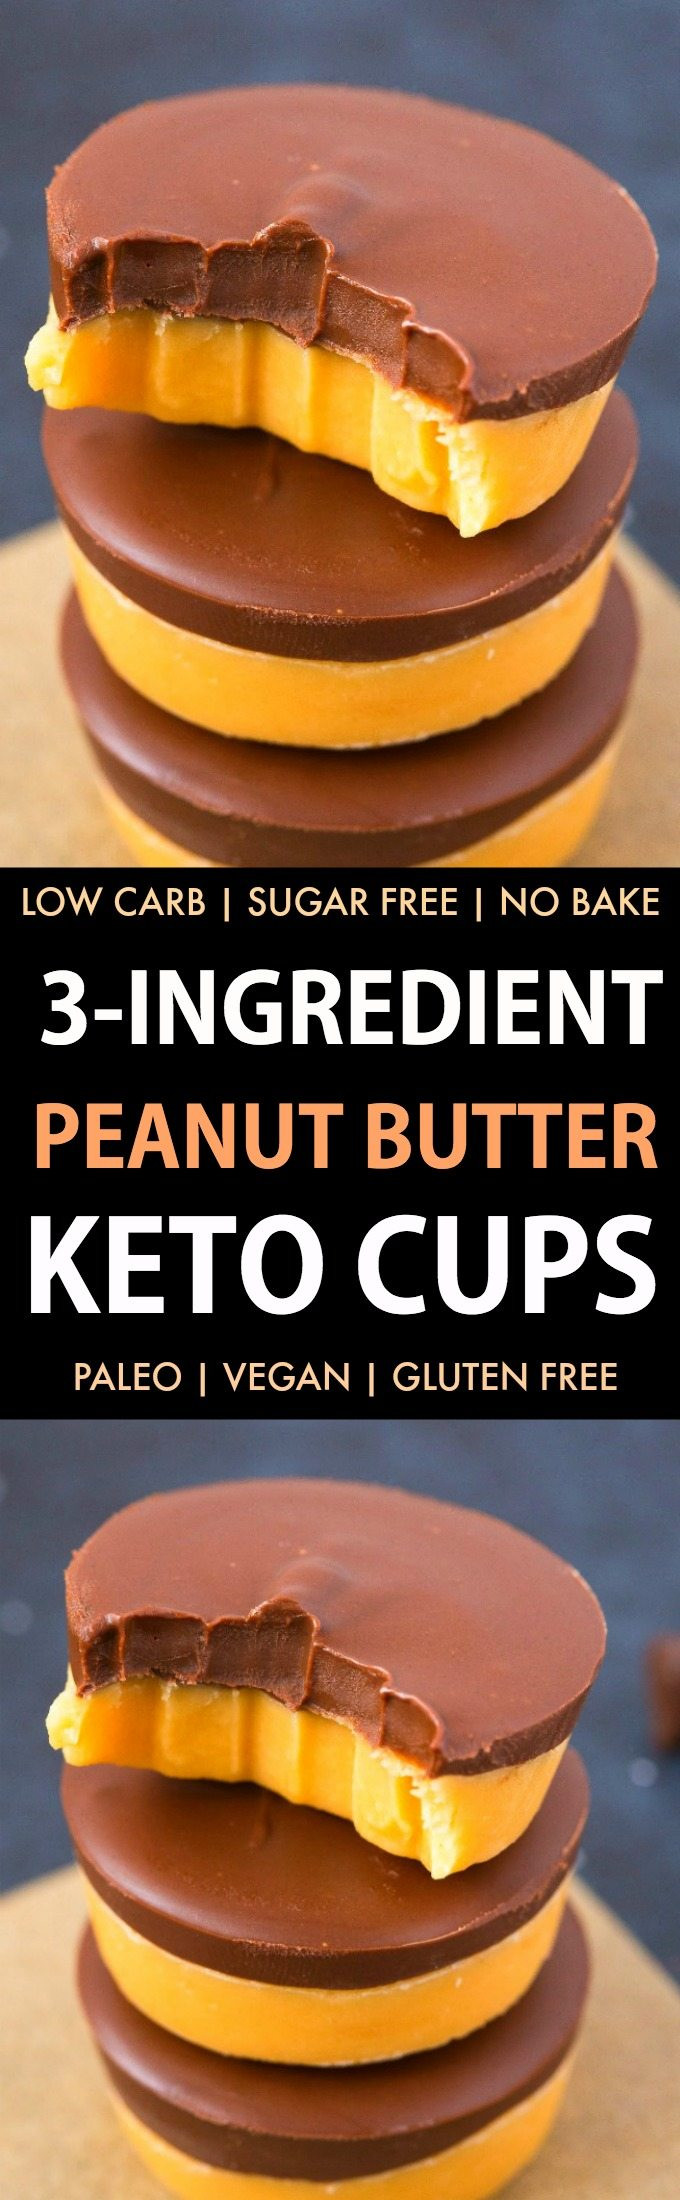 Peanut Butter Keto Diet  Healthy 3 Ingre nt Keto Peanut Butter Fudge Low Carb